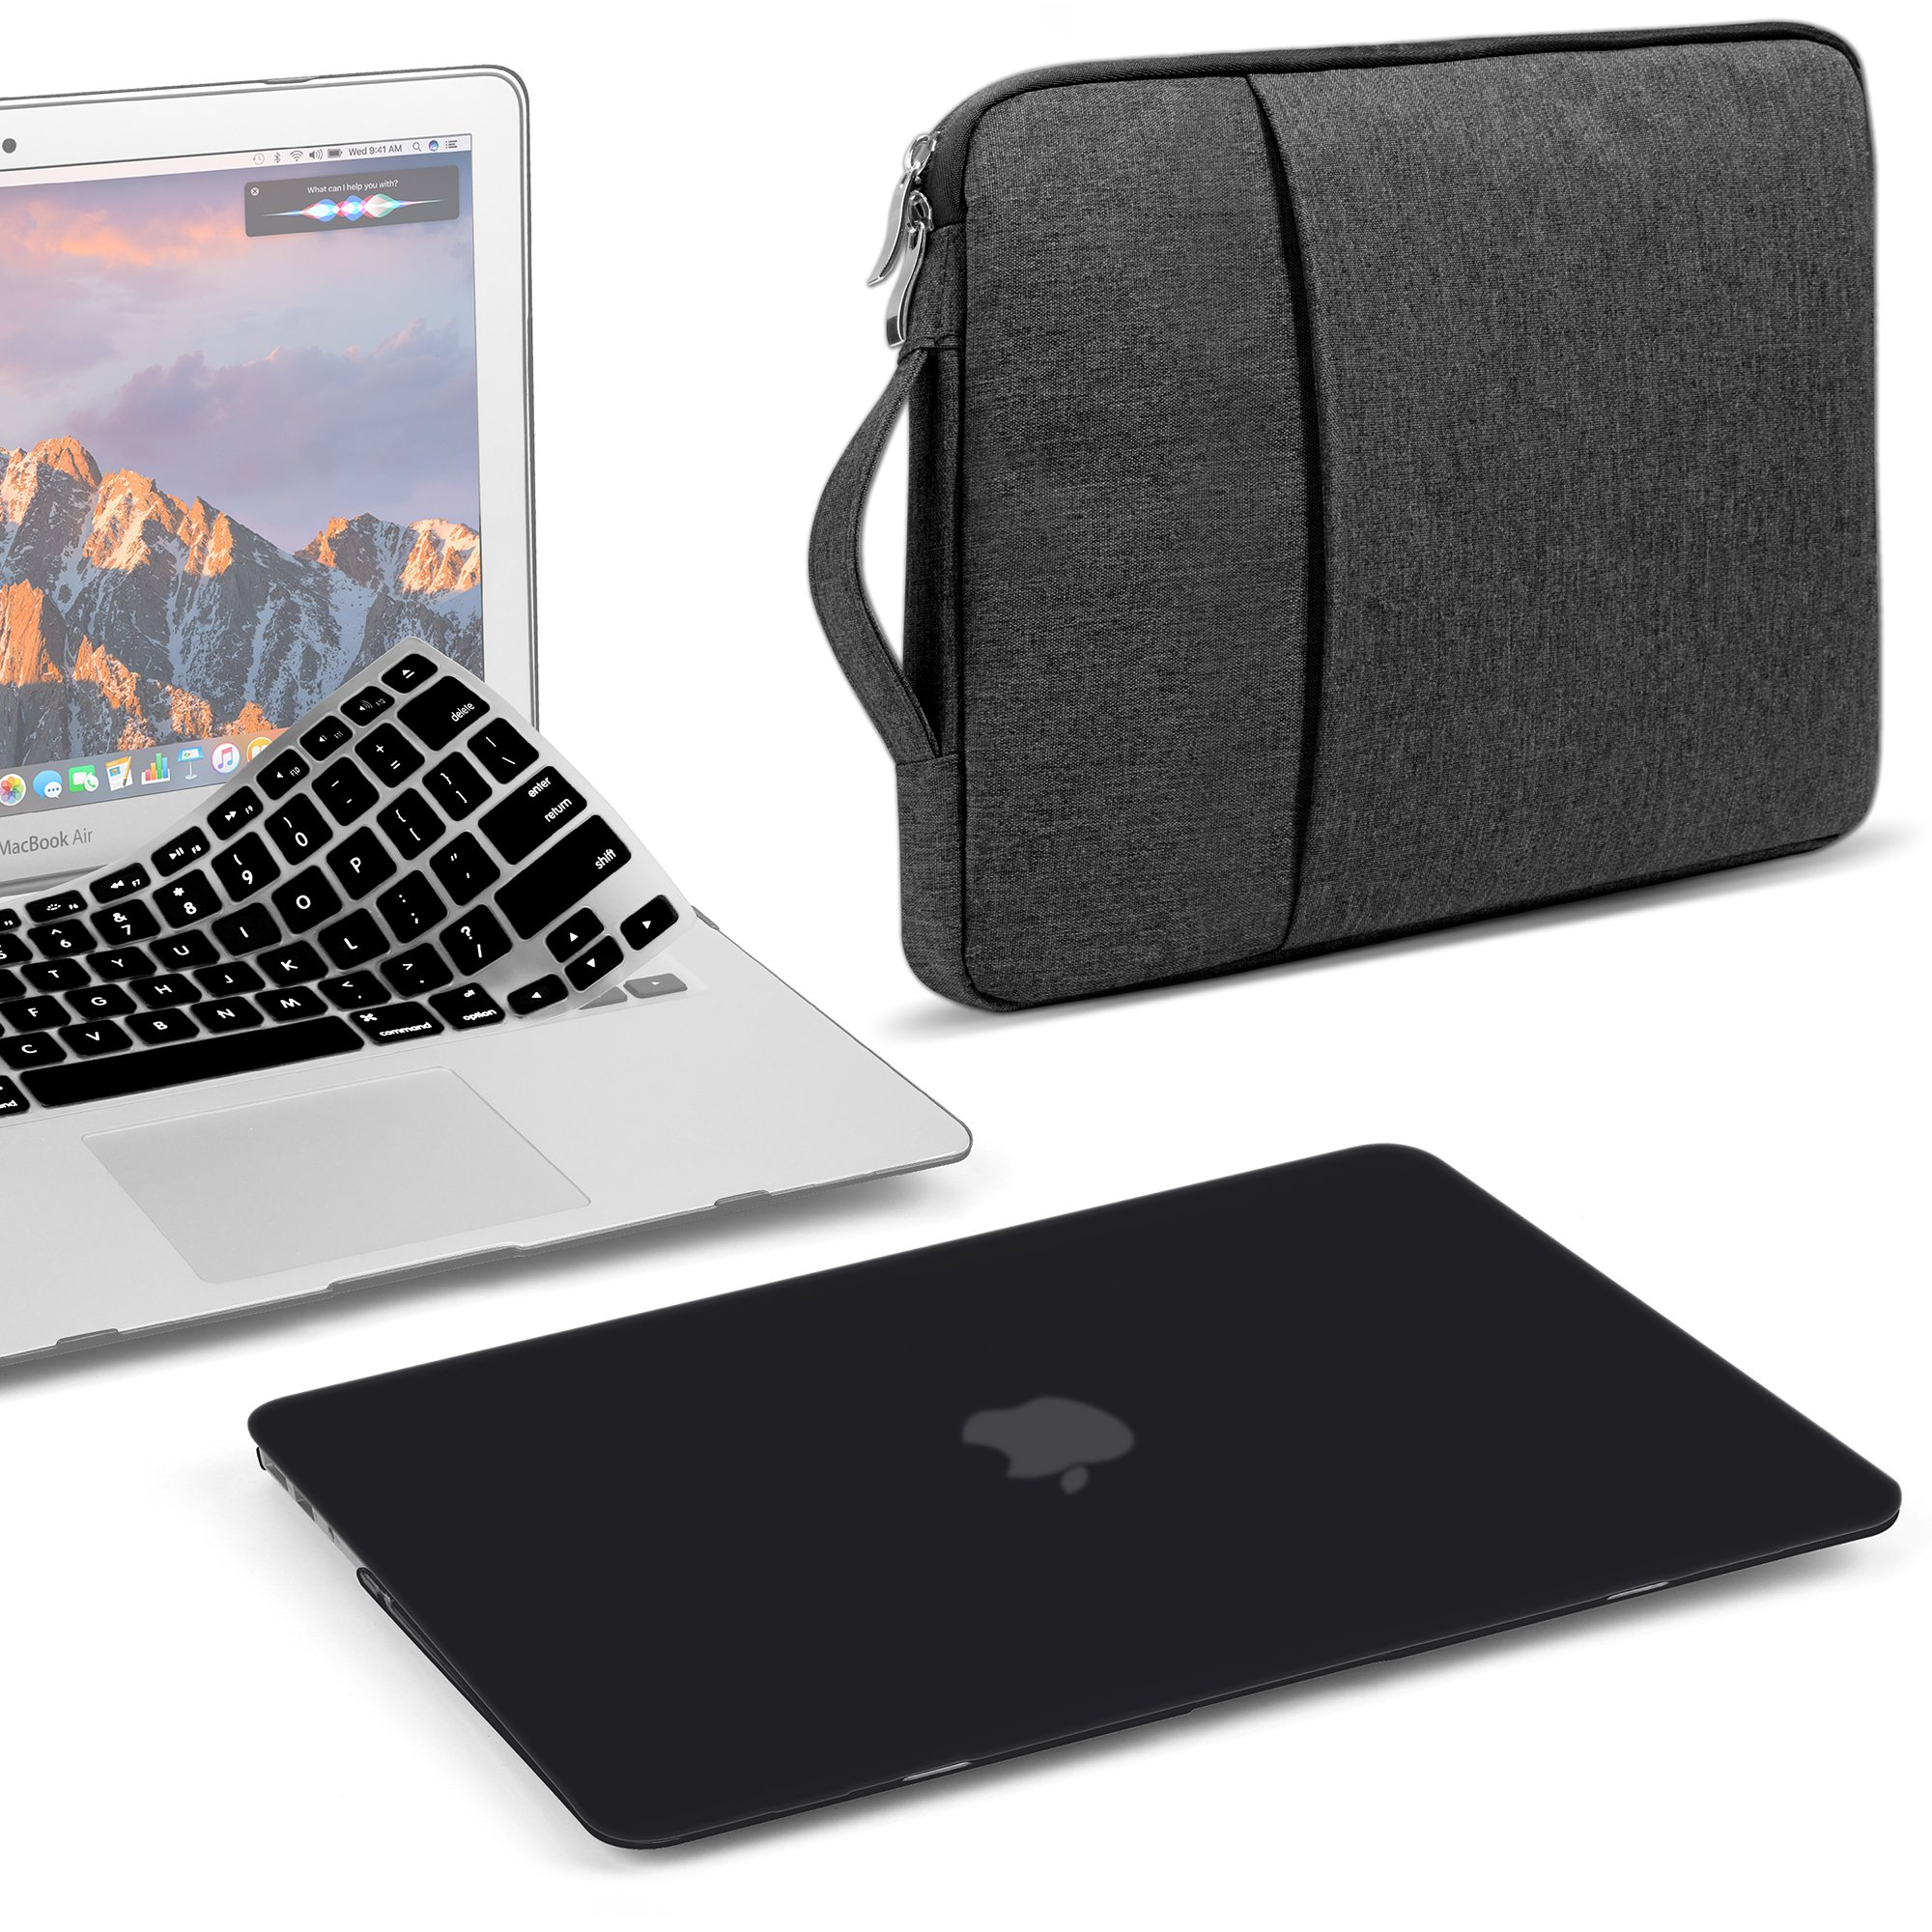 GMYLE 3 in 1 Bundle Black Set Soft-Touch Matte Plastic Hard Case for Macbook Air 13 inch (A1369/A1466) Water Repellent Laptop Sleeve with Handle and Pocket & with Silicon Keyboard Cover [US layout]